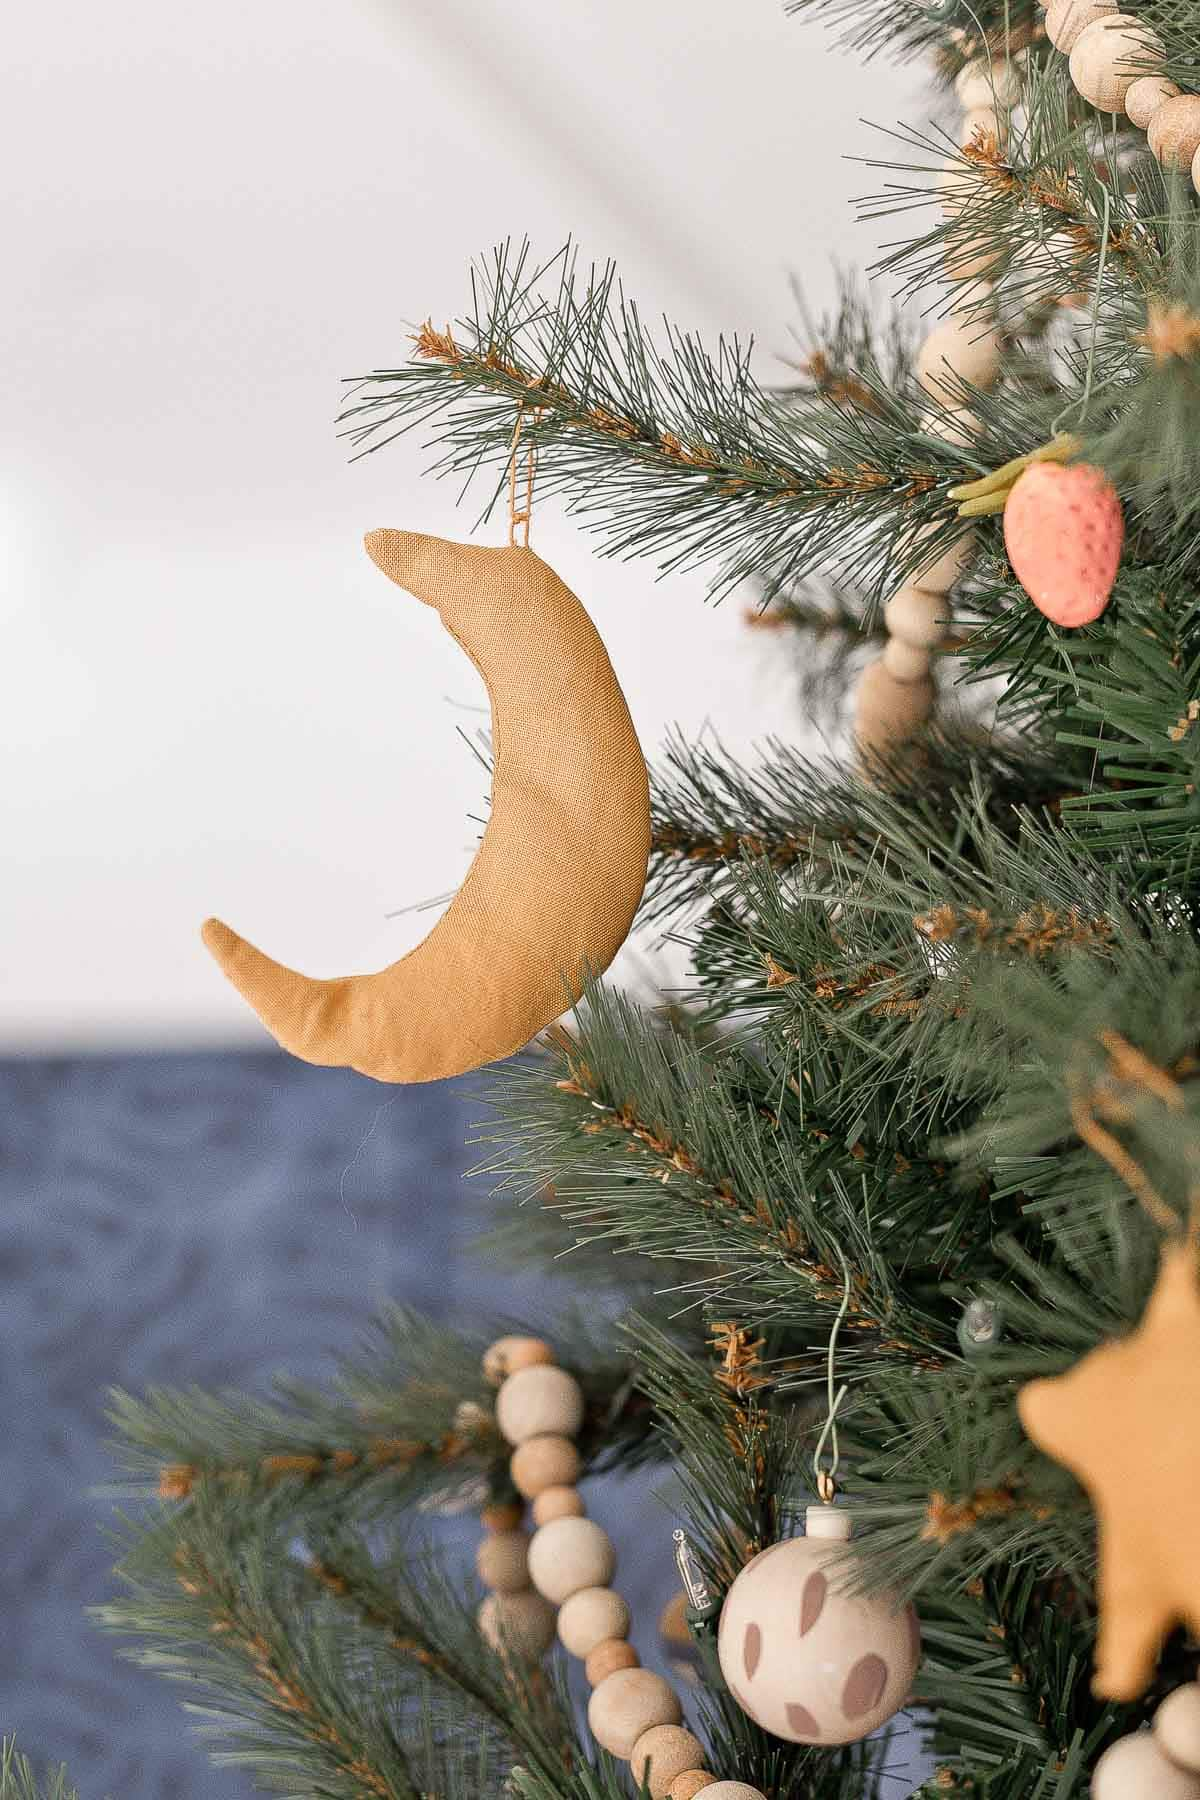 Moon ornament hanging on a Christmas tree